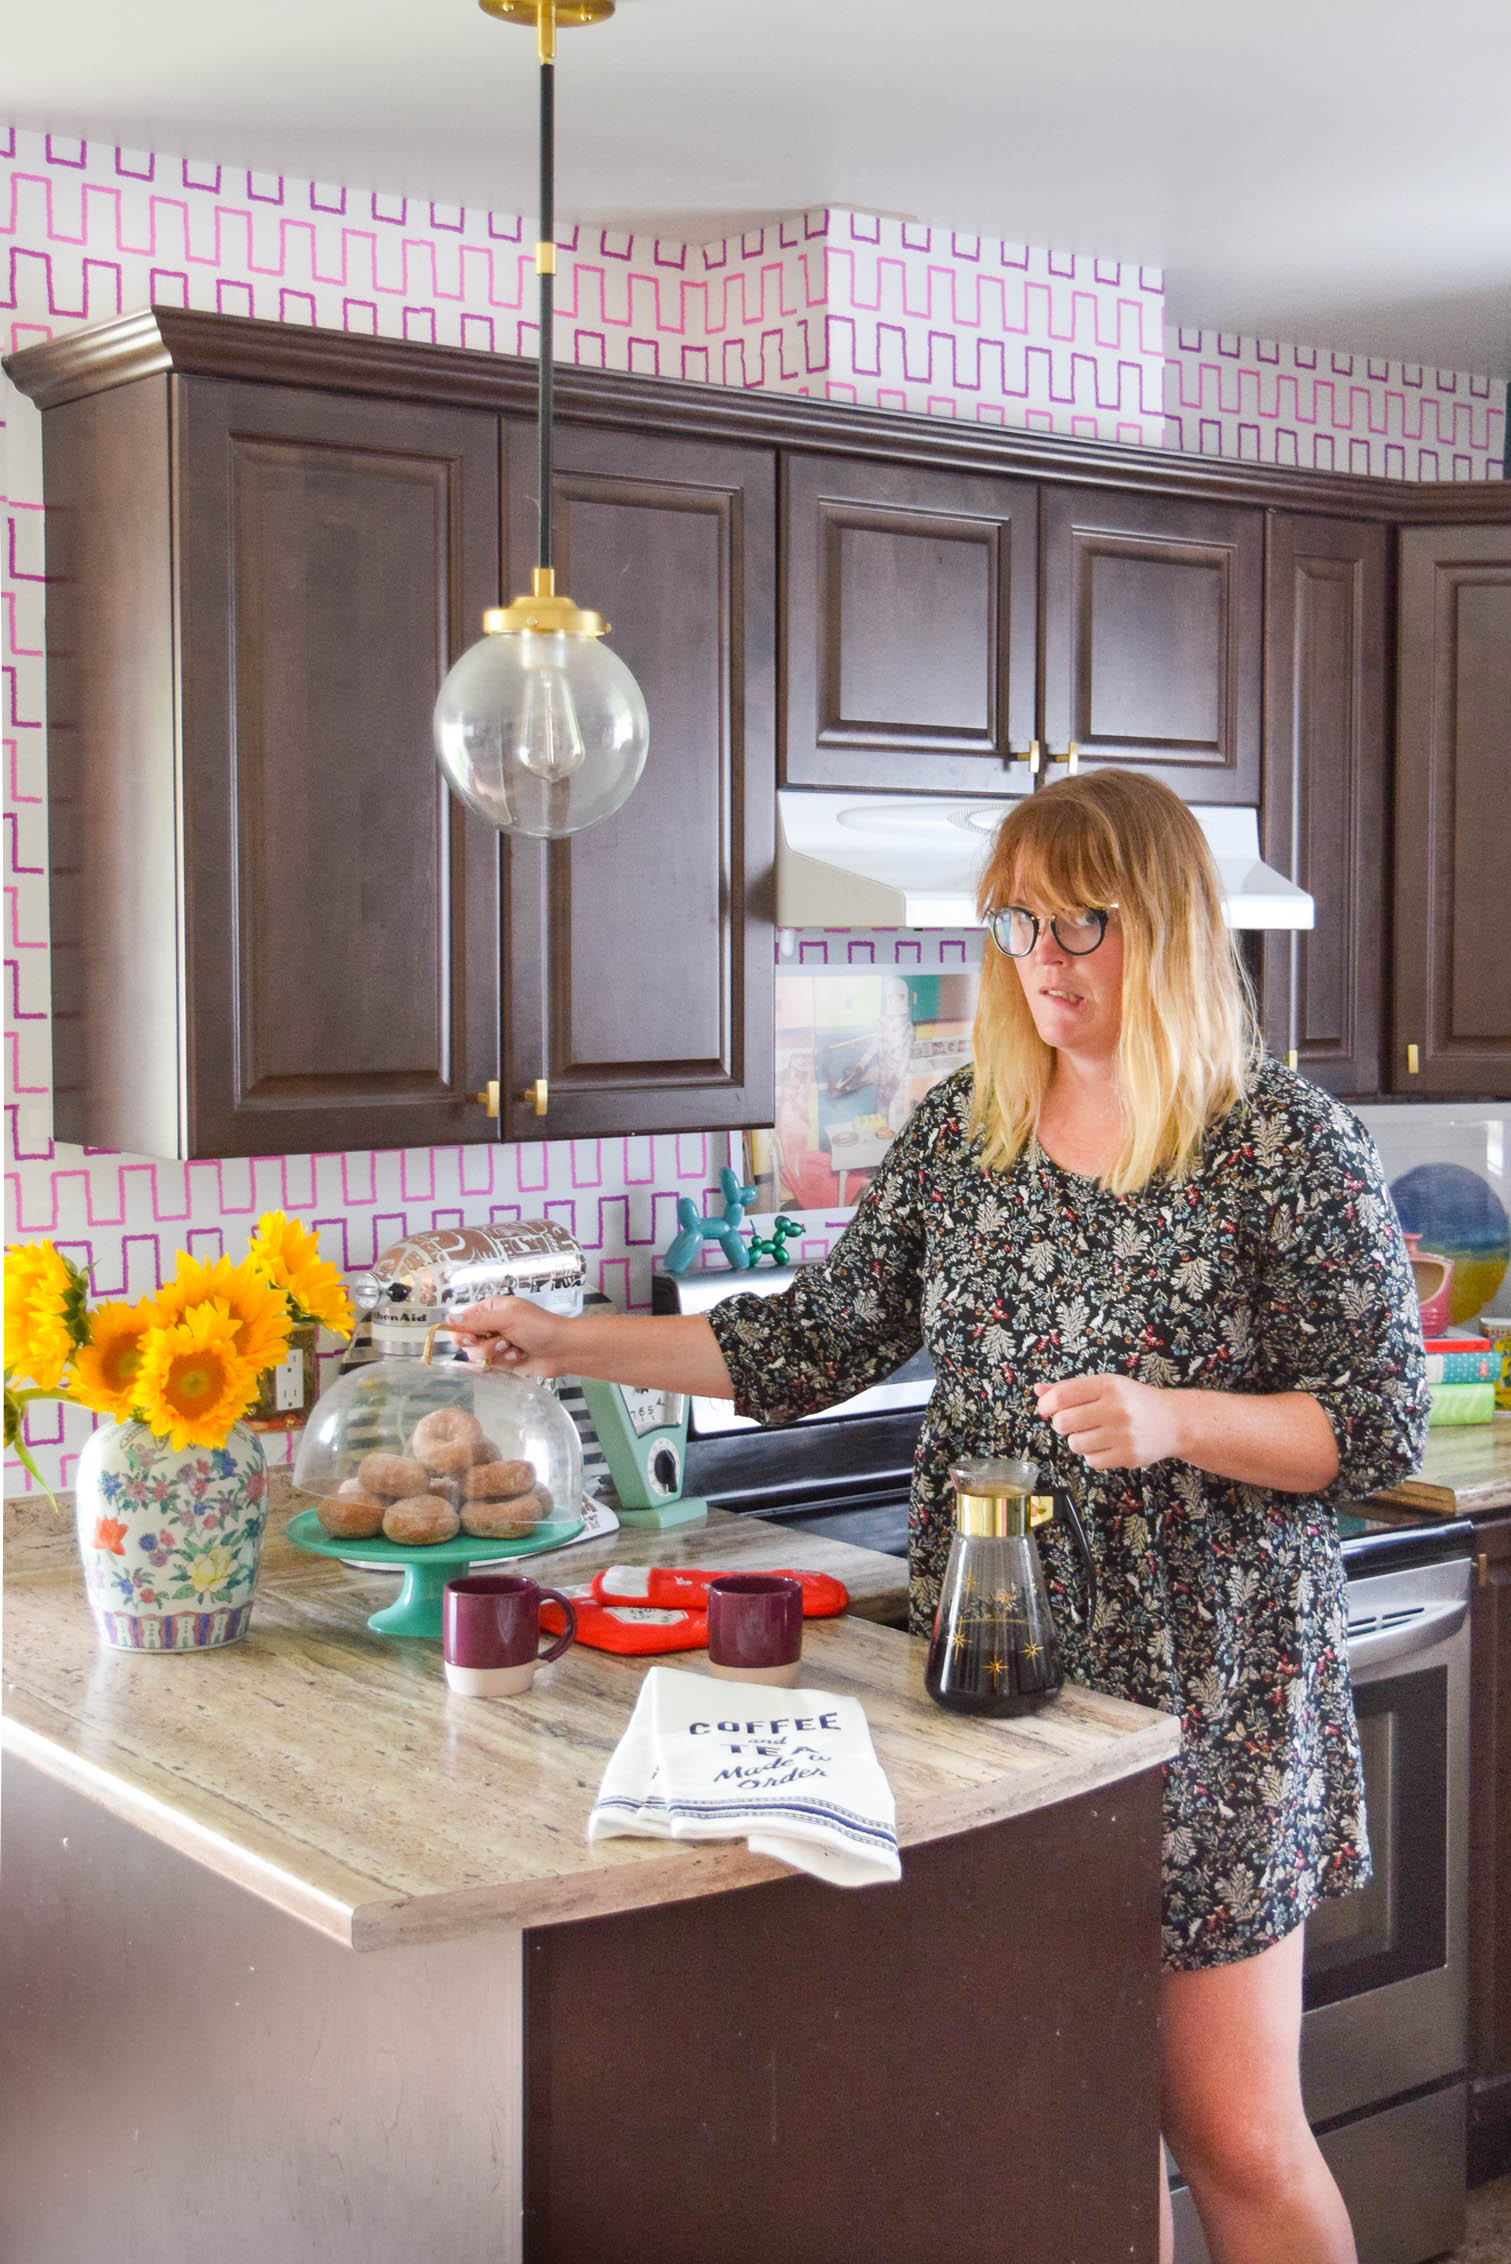 woman opening desert display in kitchen